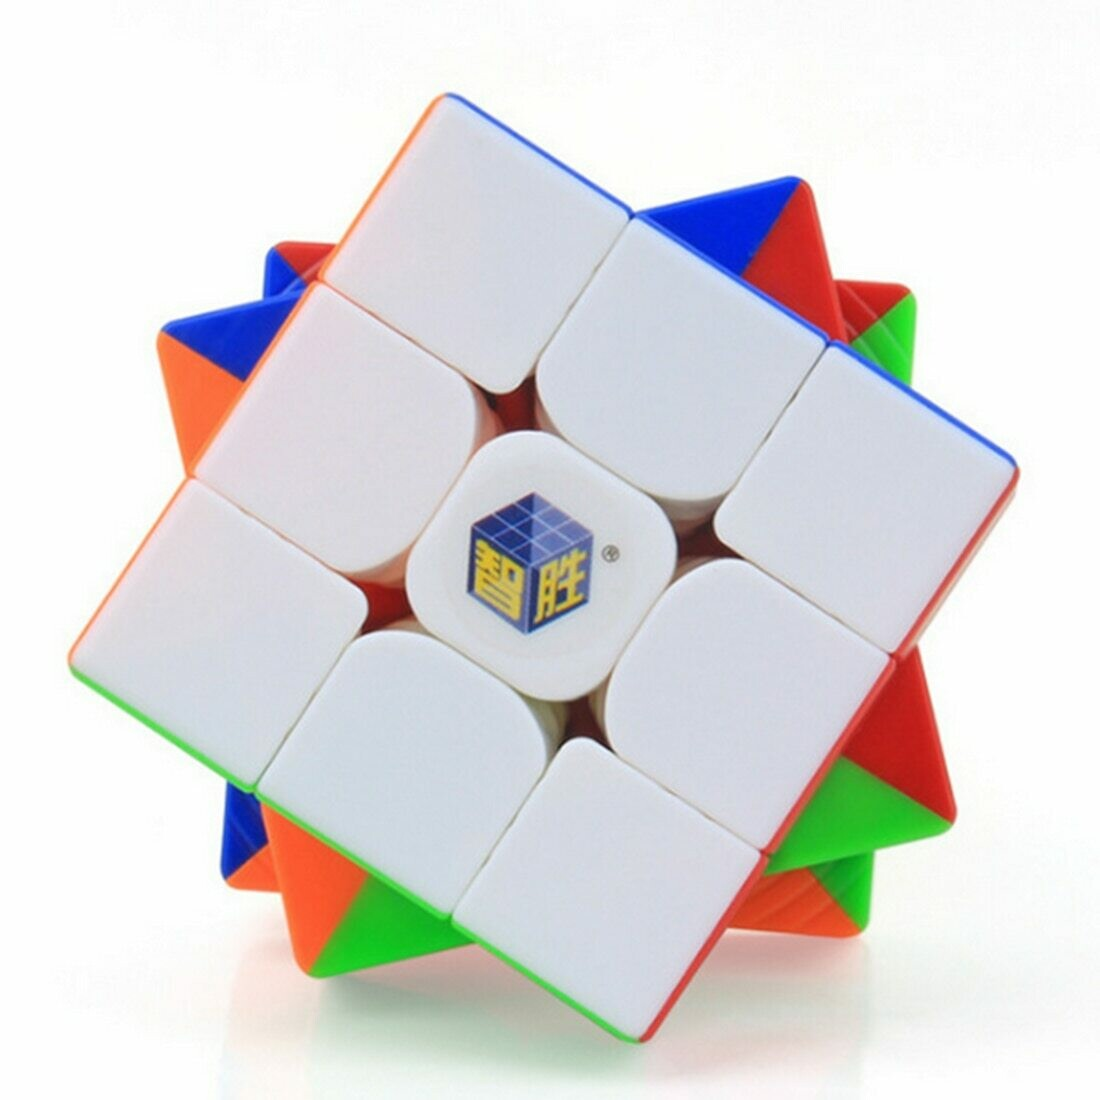 YUXIN LITTLE MAGIC 3x3x3 color